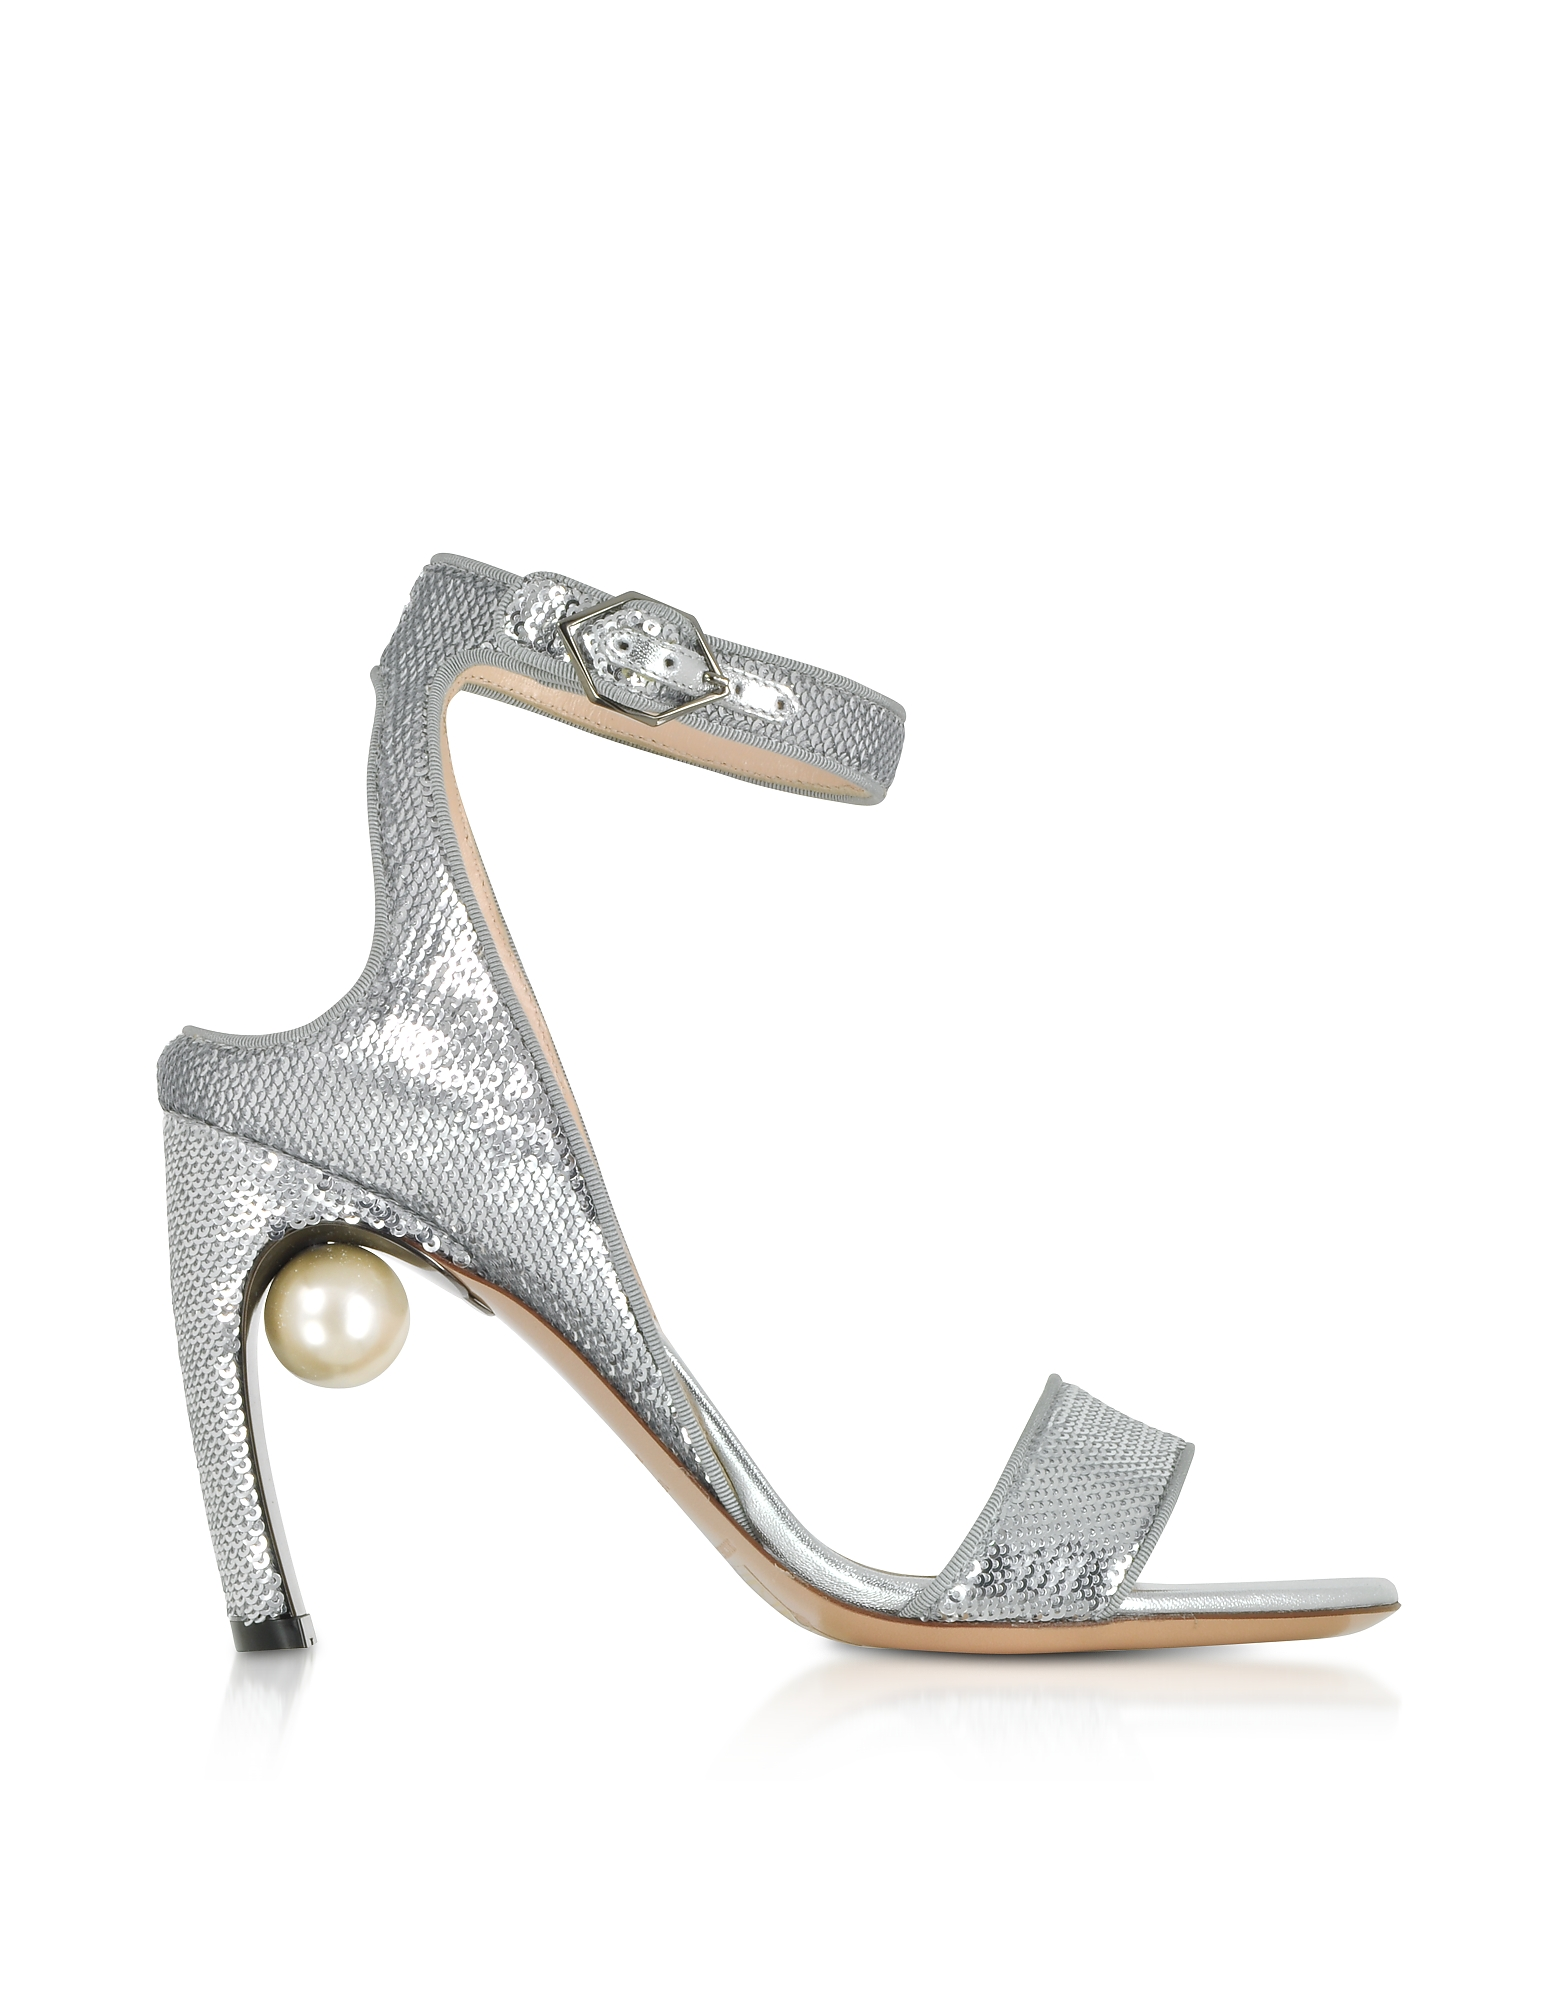 Nicholas Kirkwood Designer Shoes, Silver Sequins 90mm Lola Pearl Sandals